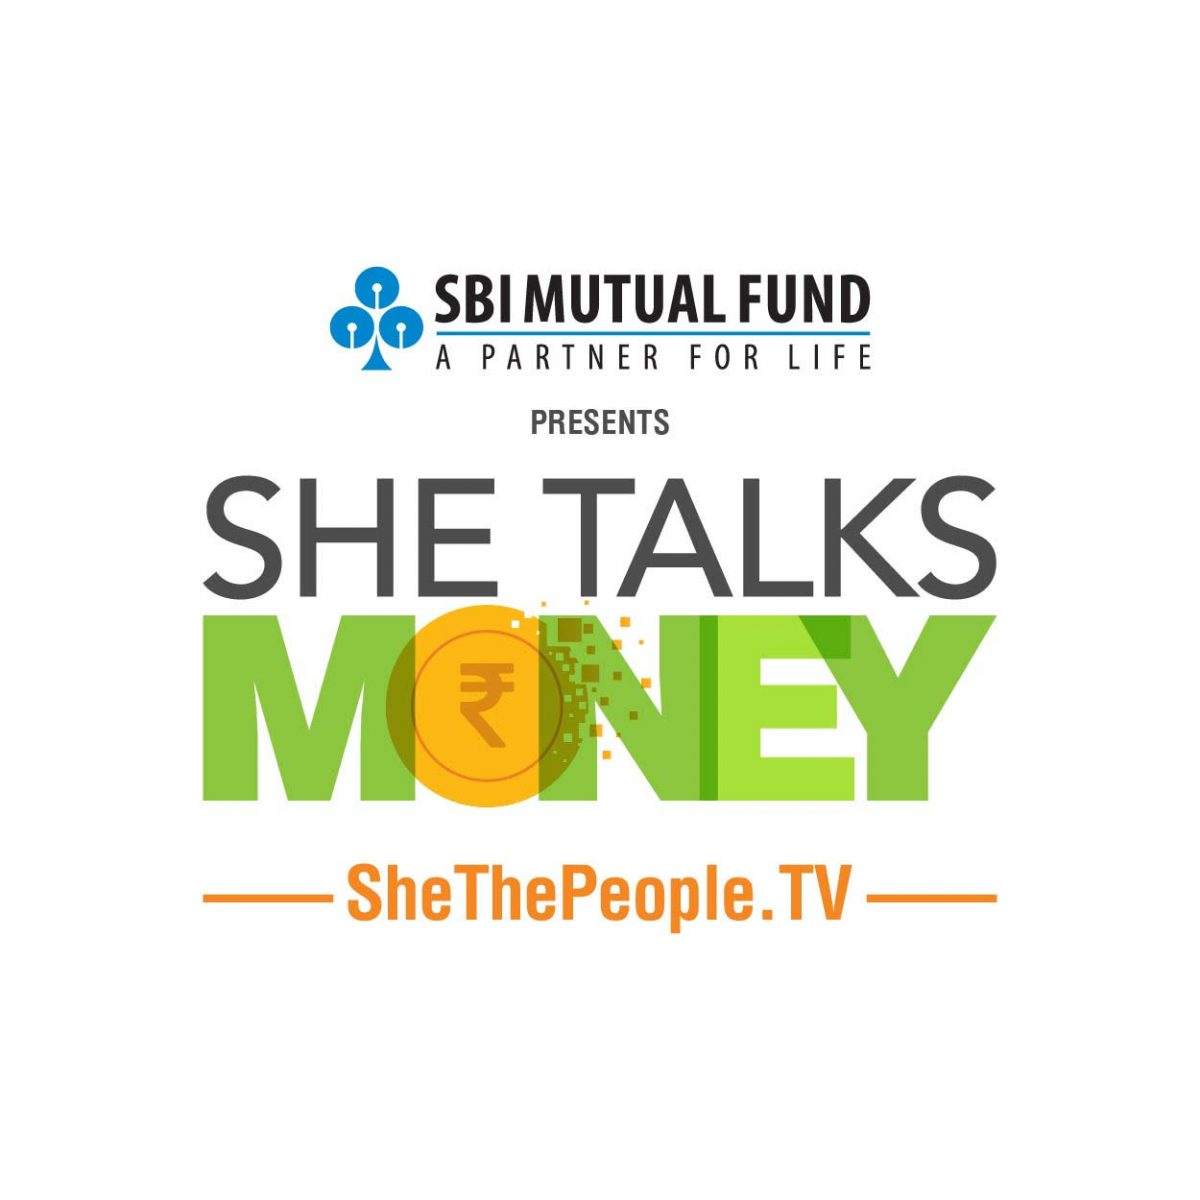 She Talks Money SBI Mutual Funds for Women